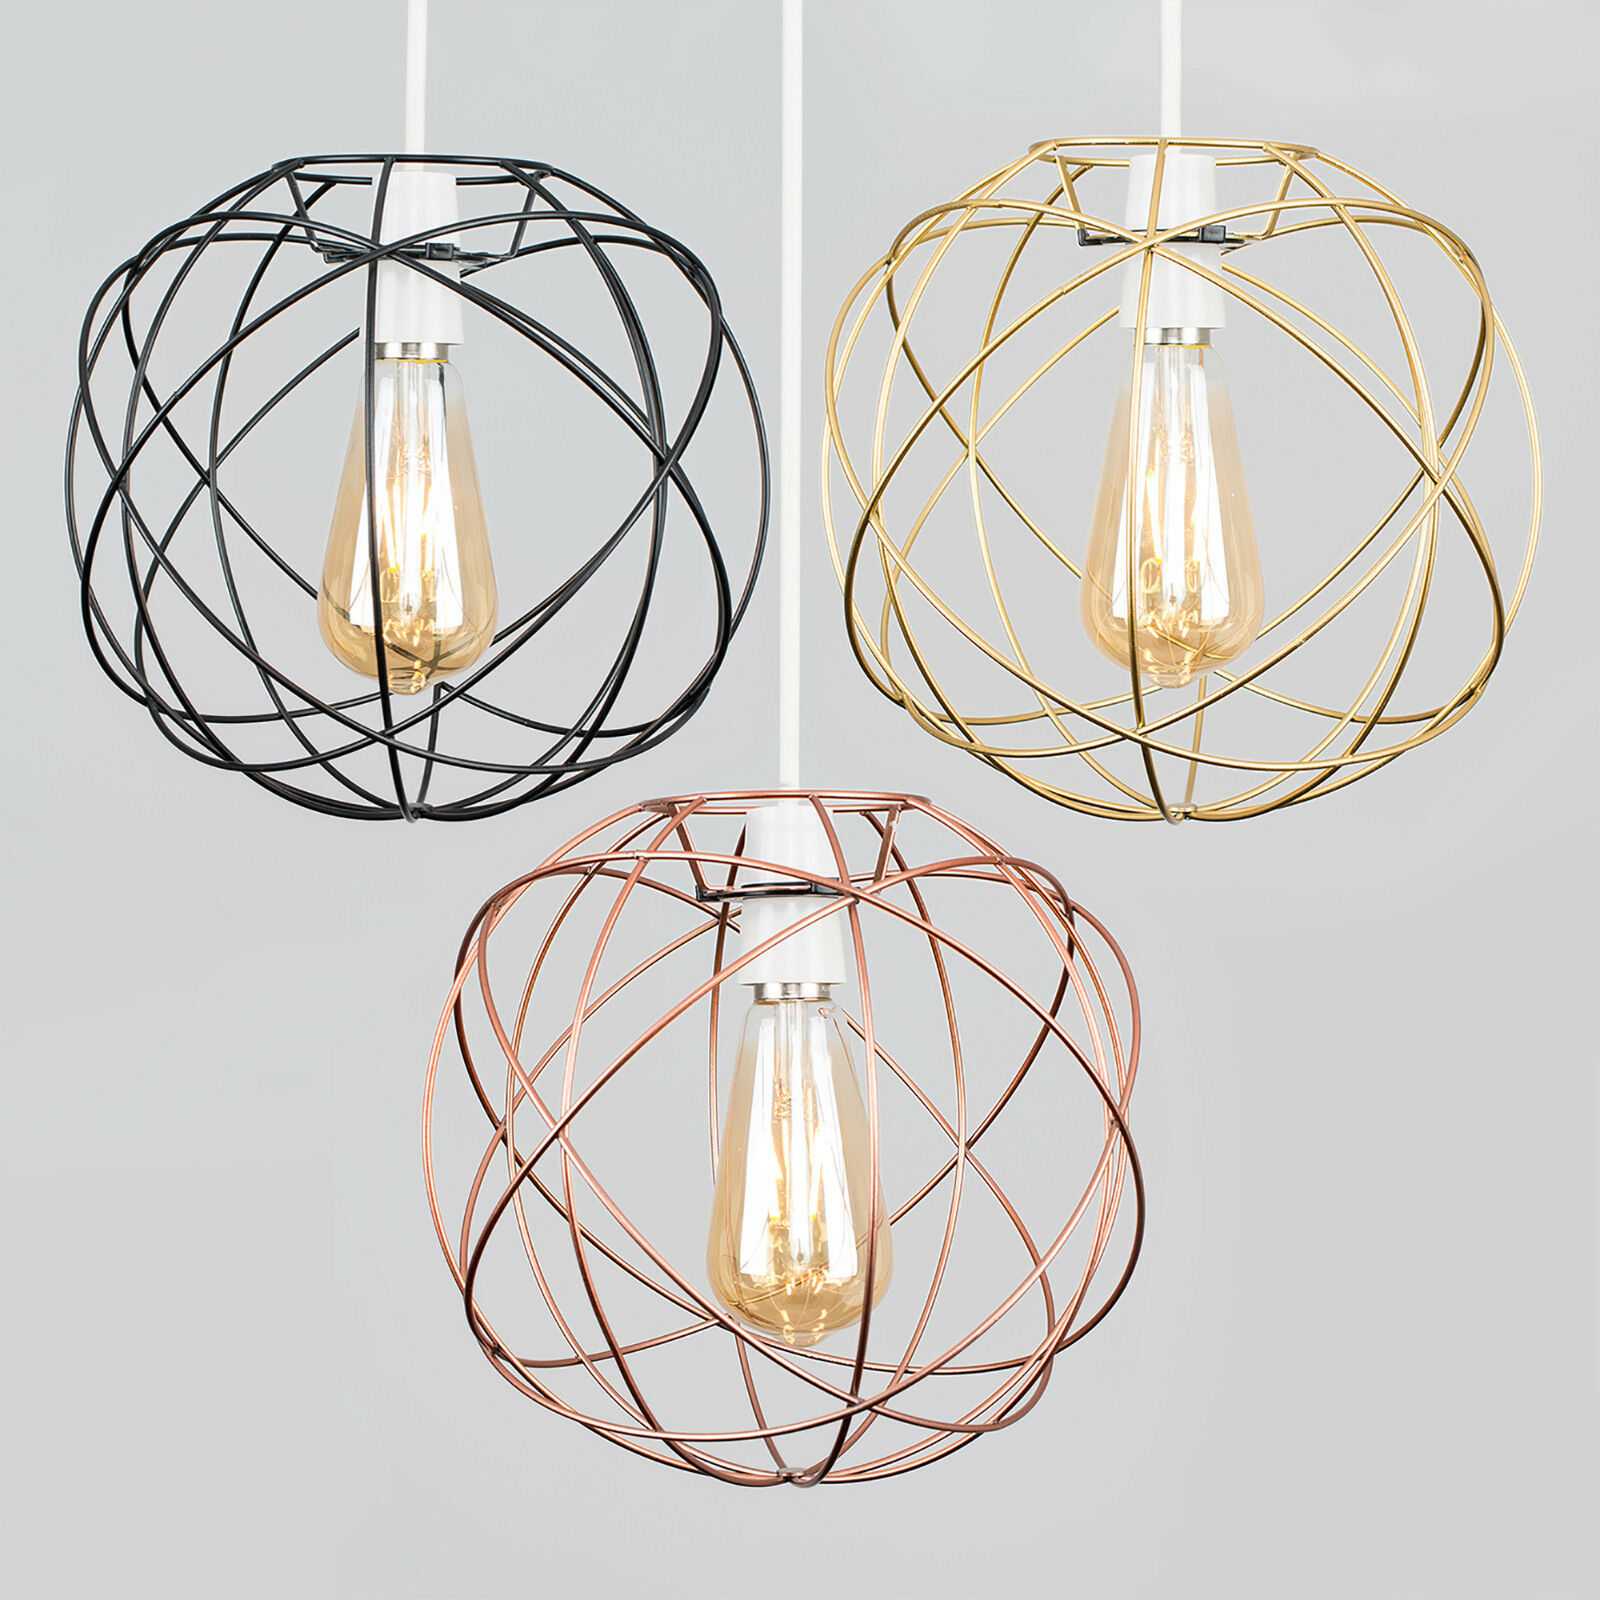 Geometric Sphere Led Ceiling Pendant Light Shades Black Copper Gold Lampshade